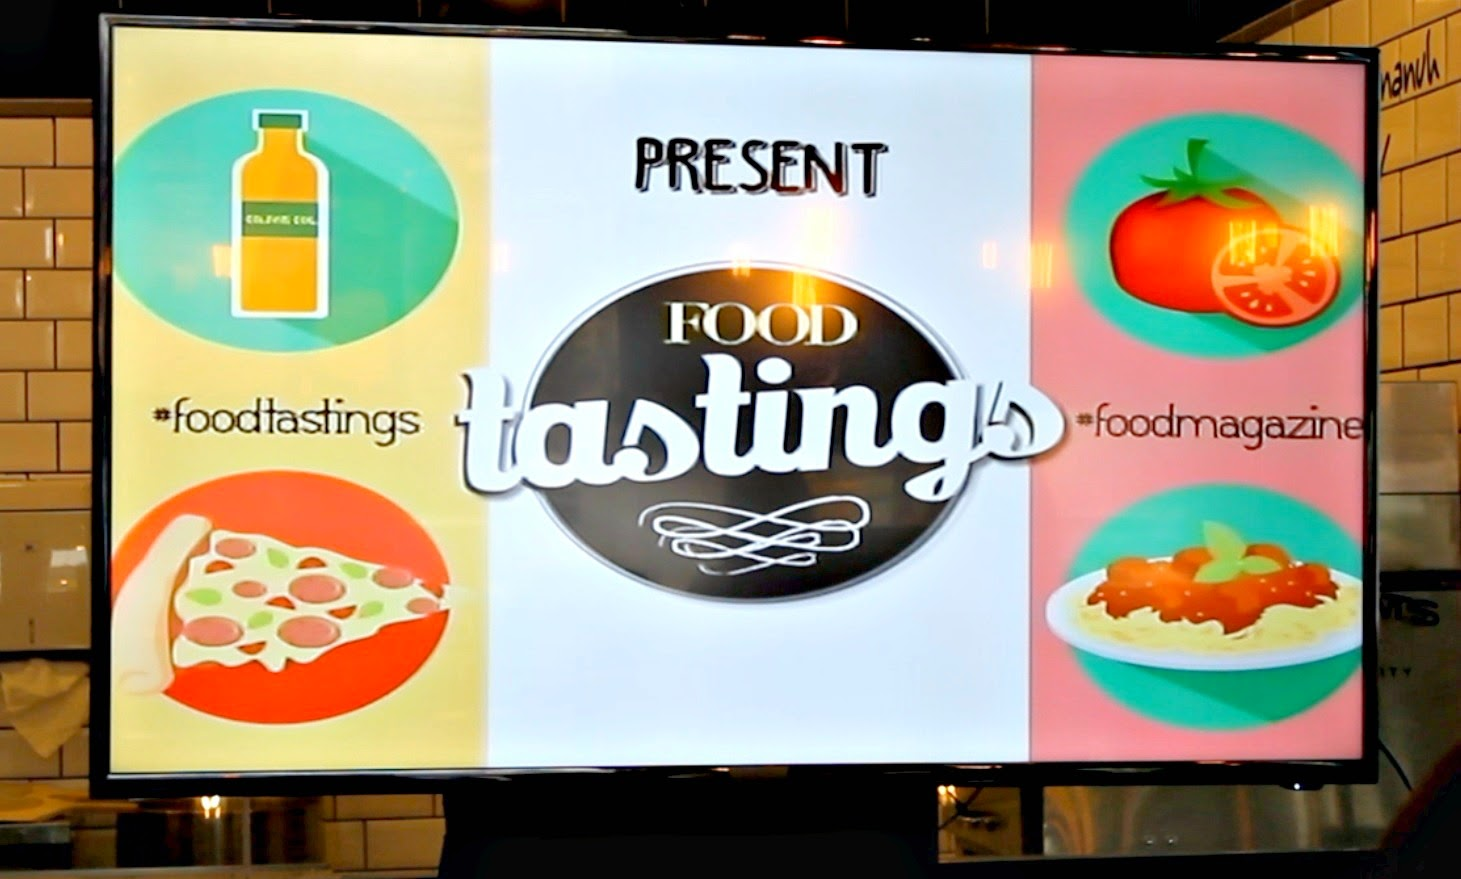 Food Tastings: A Pizza and Pasta Class by Food Magazine